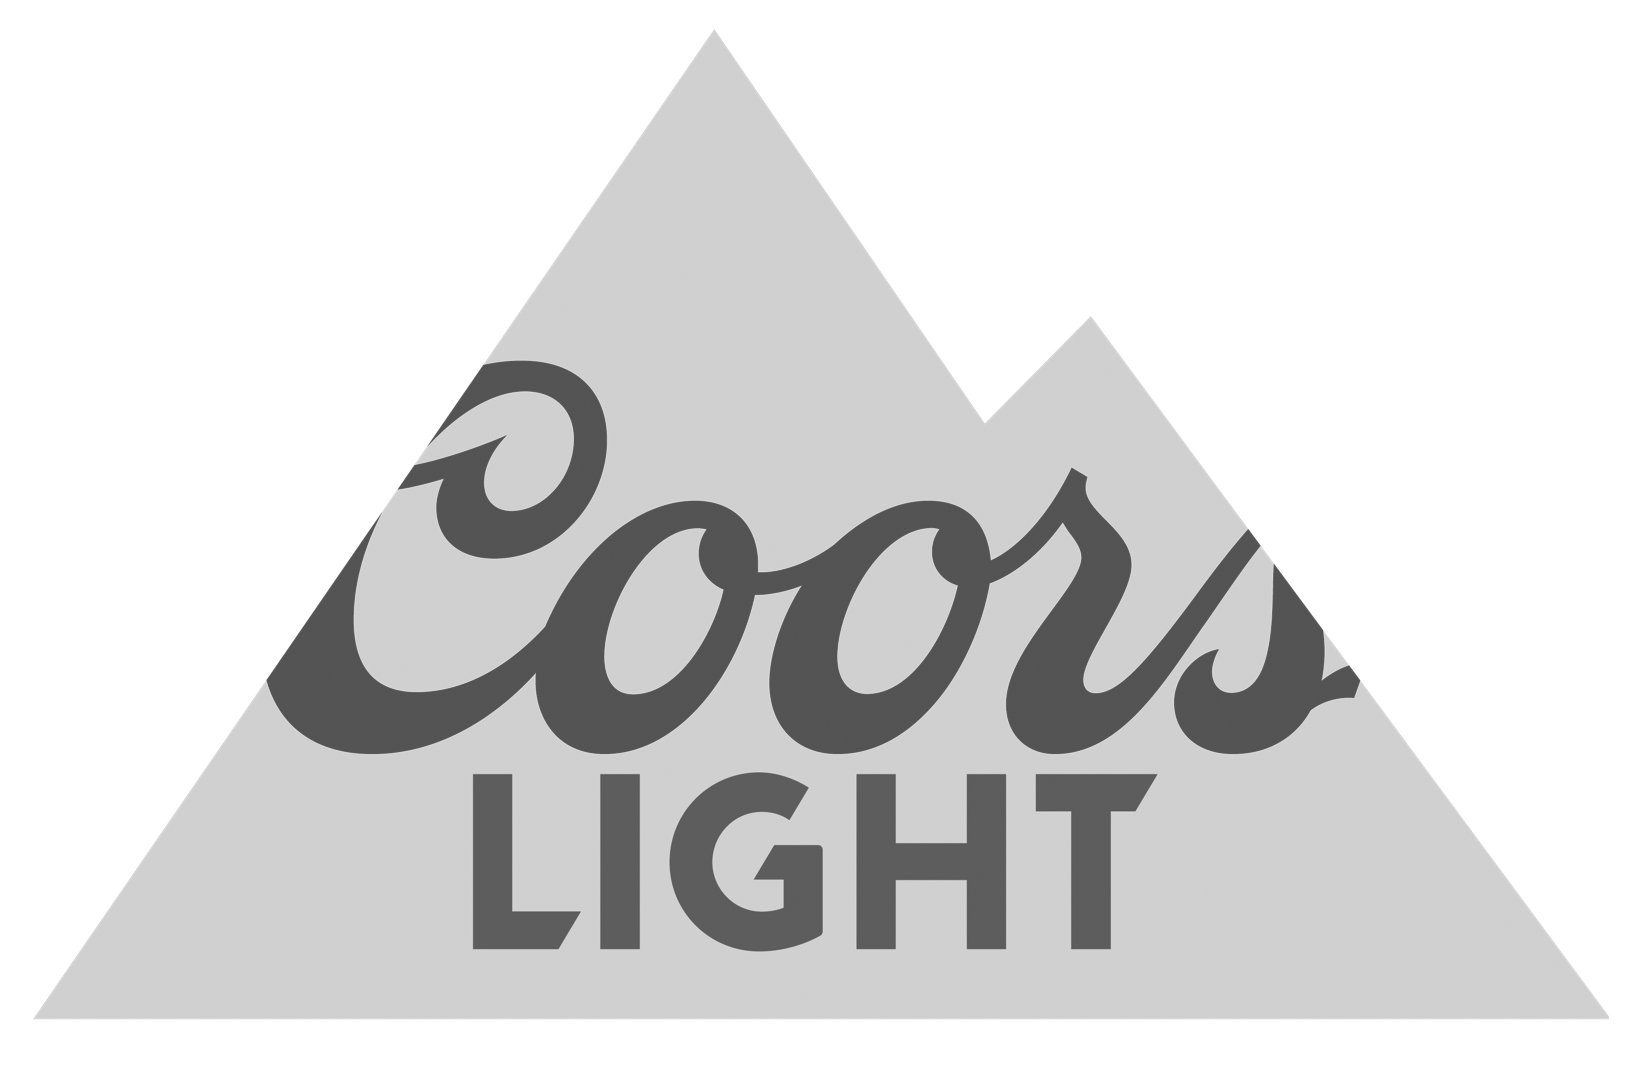 coors logo 3.png